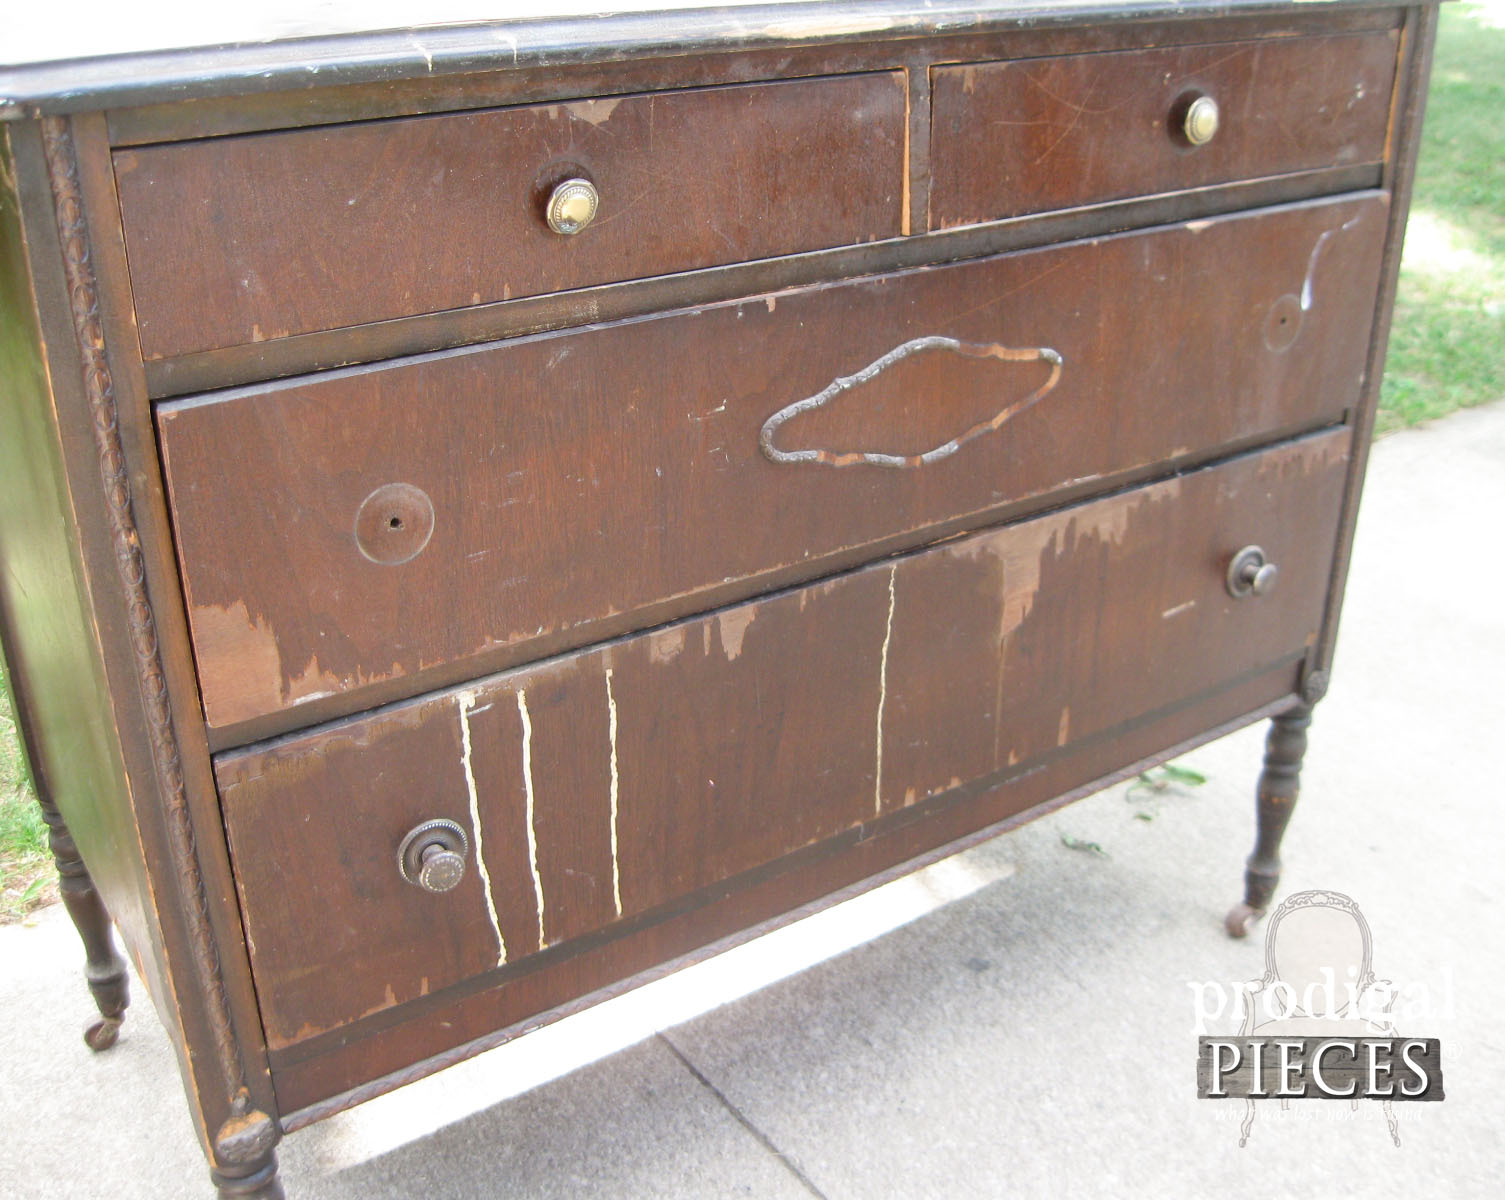 Dresser Face with Veneer Damage and Missing Parts | Prodigal Pieces | www.prodigalpieces.com